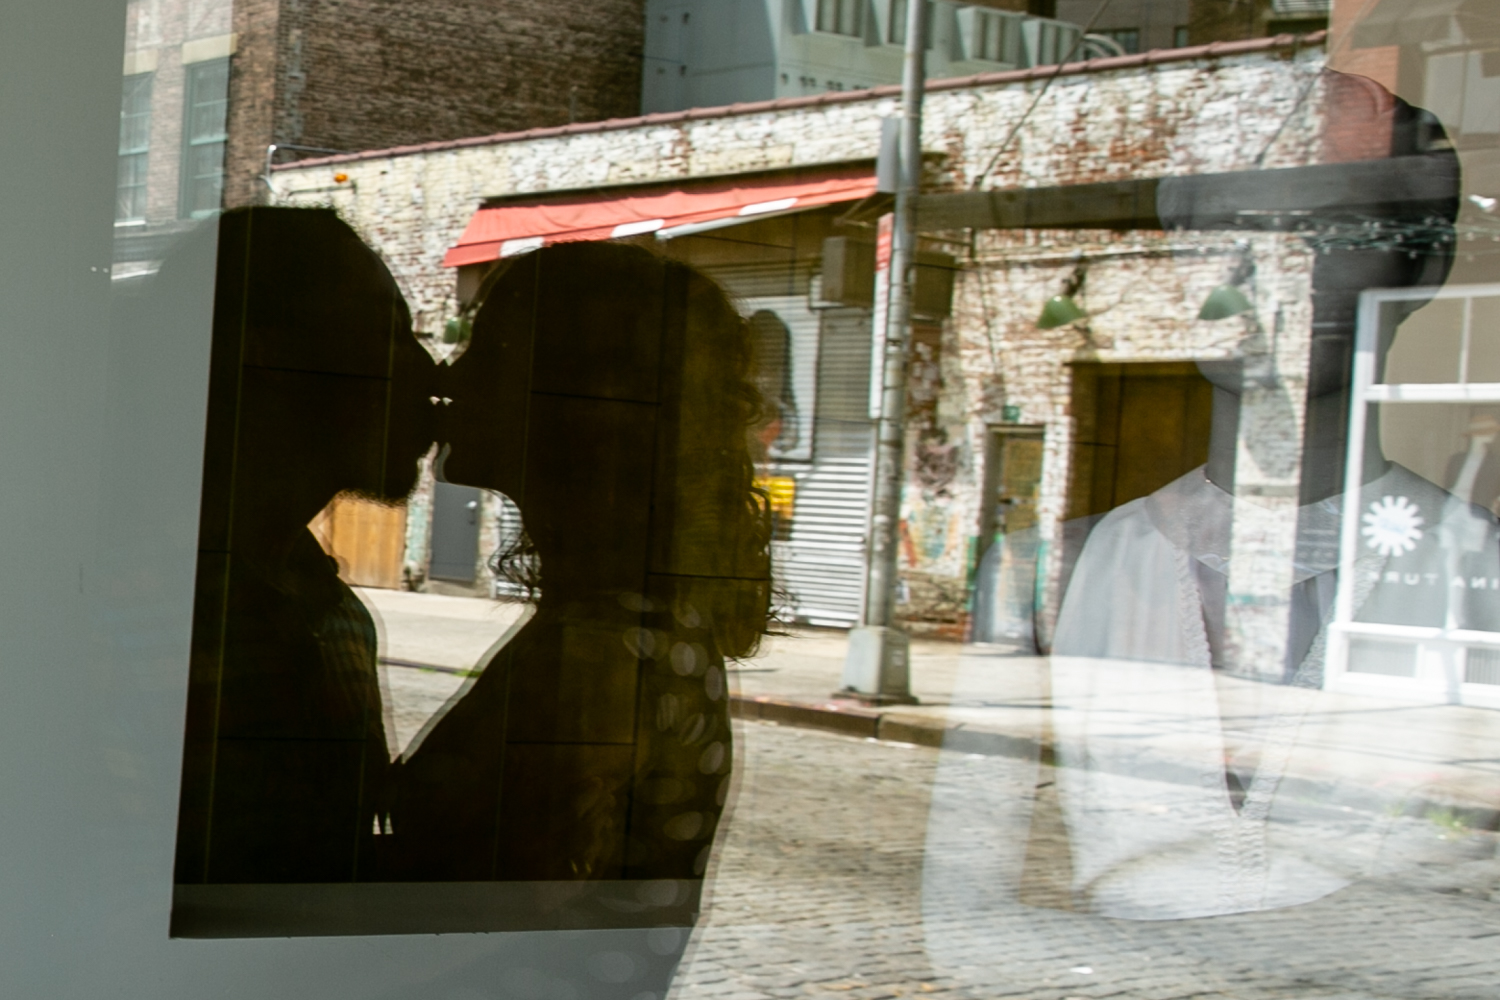 Reflection in window of couple kissing